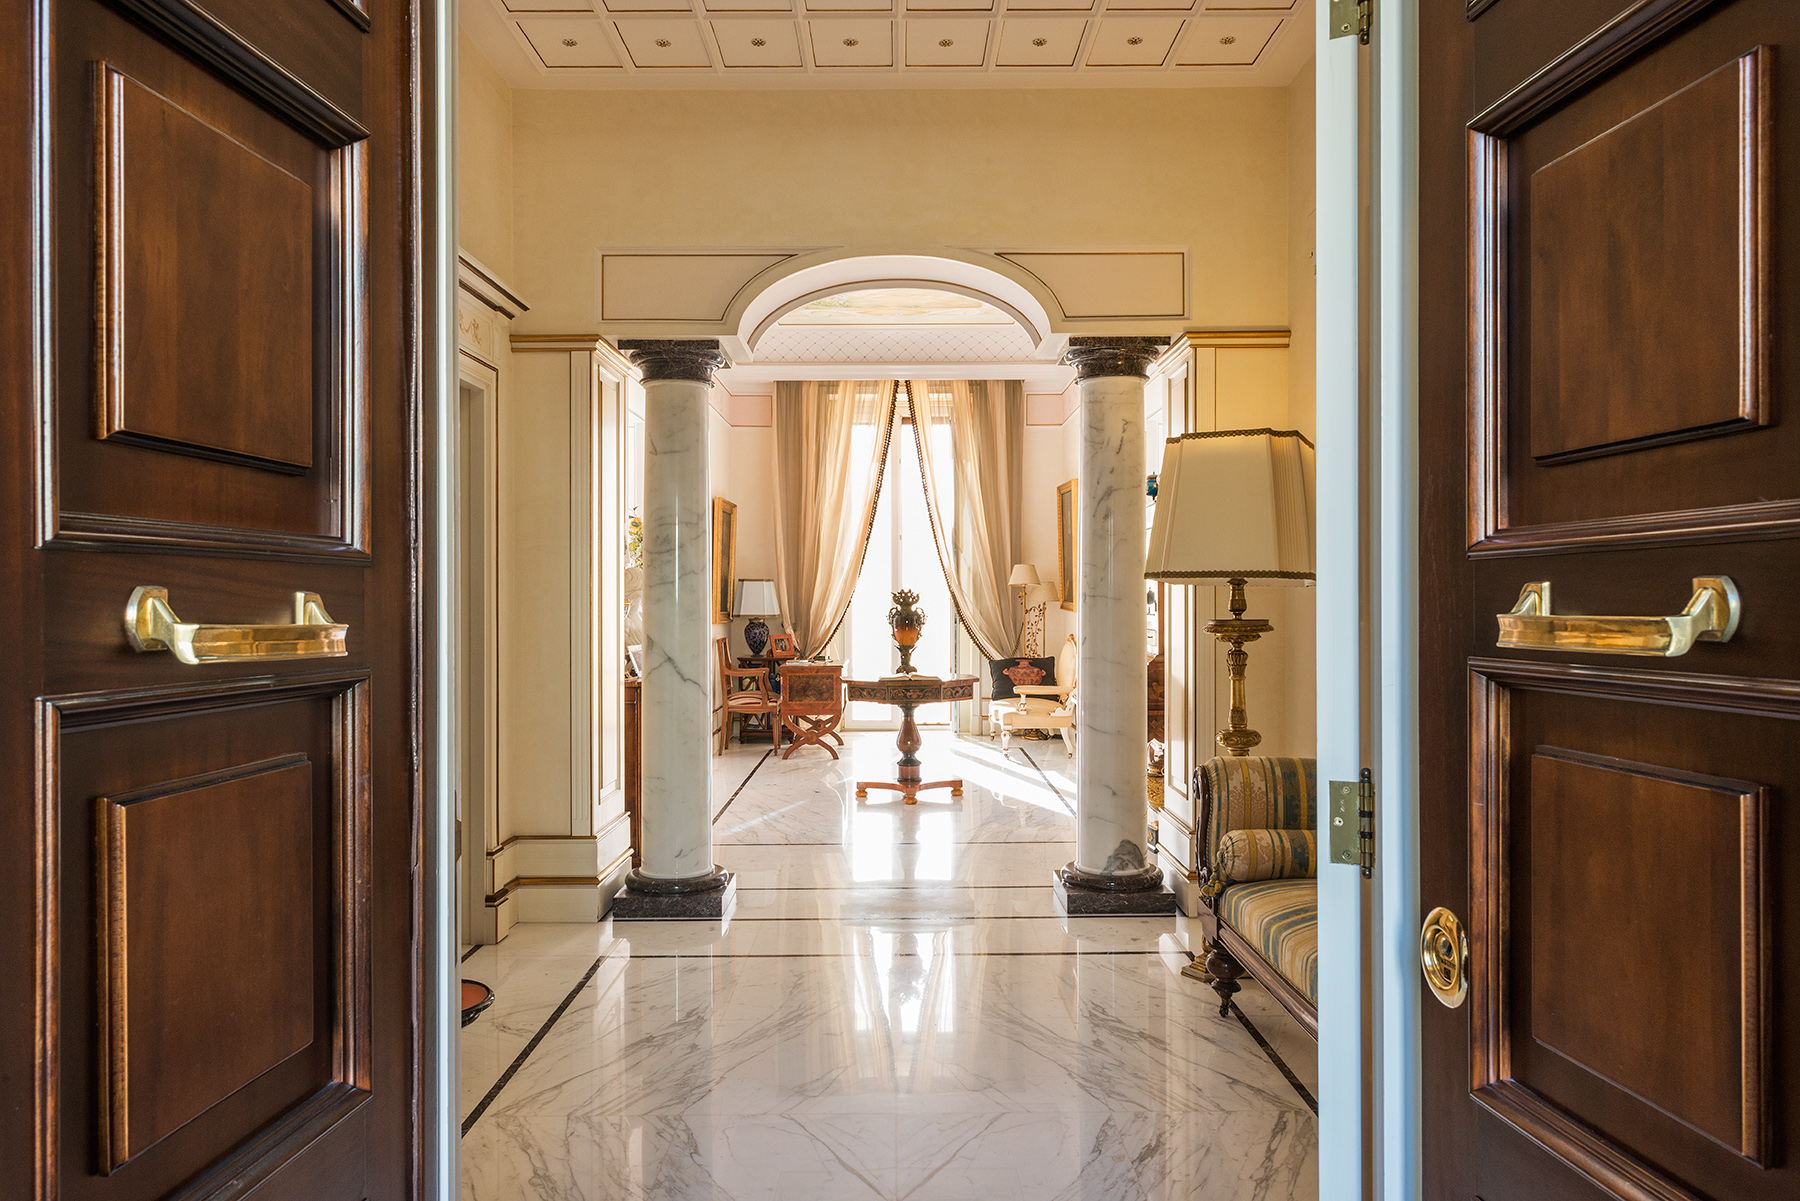 Apartment for Sale at Magnificent classical style apartment Via Vittoria Colonna Napoli, Naples 80121 Italy